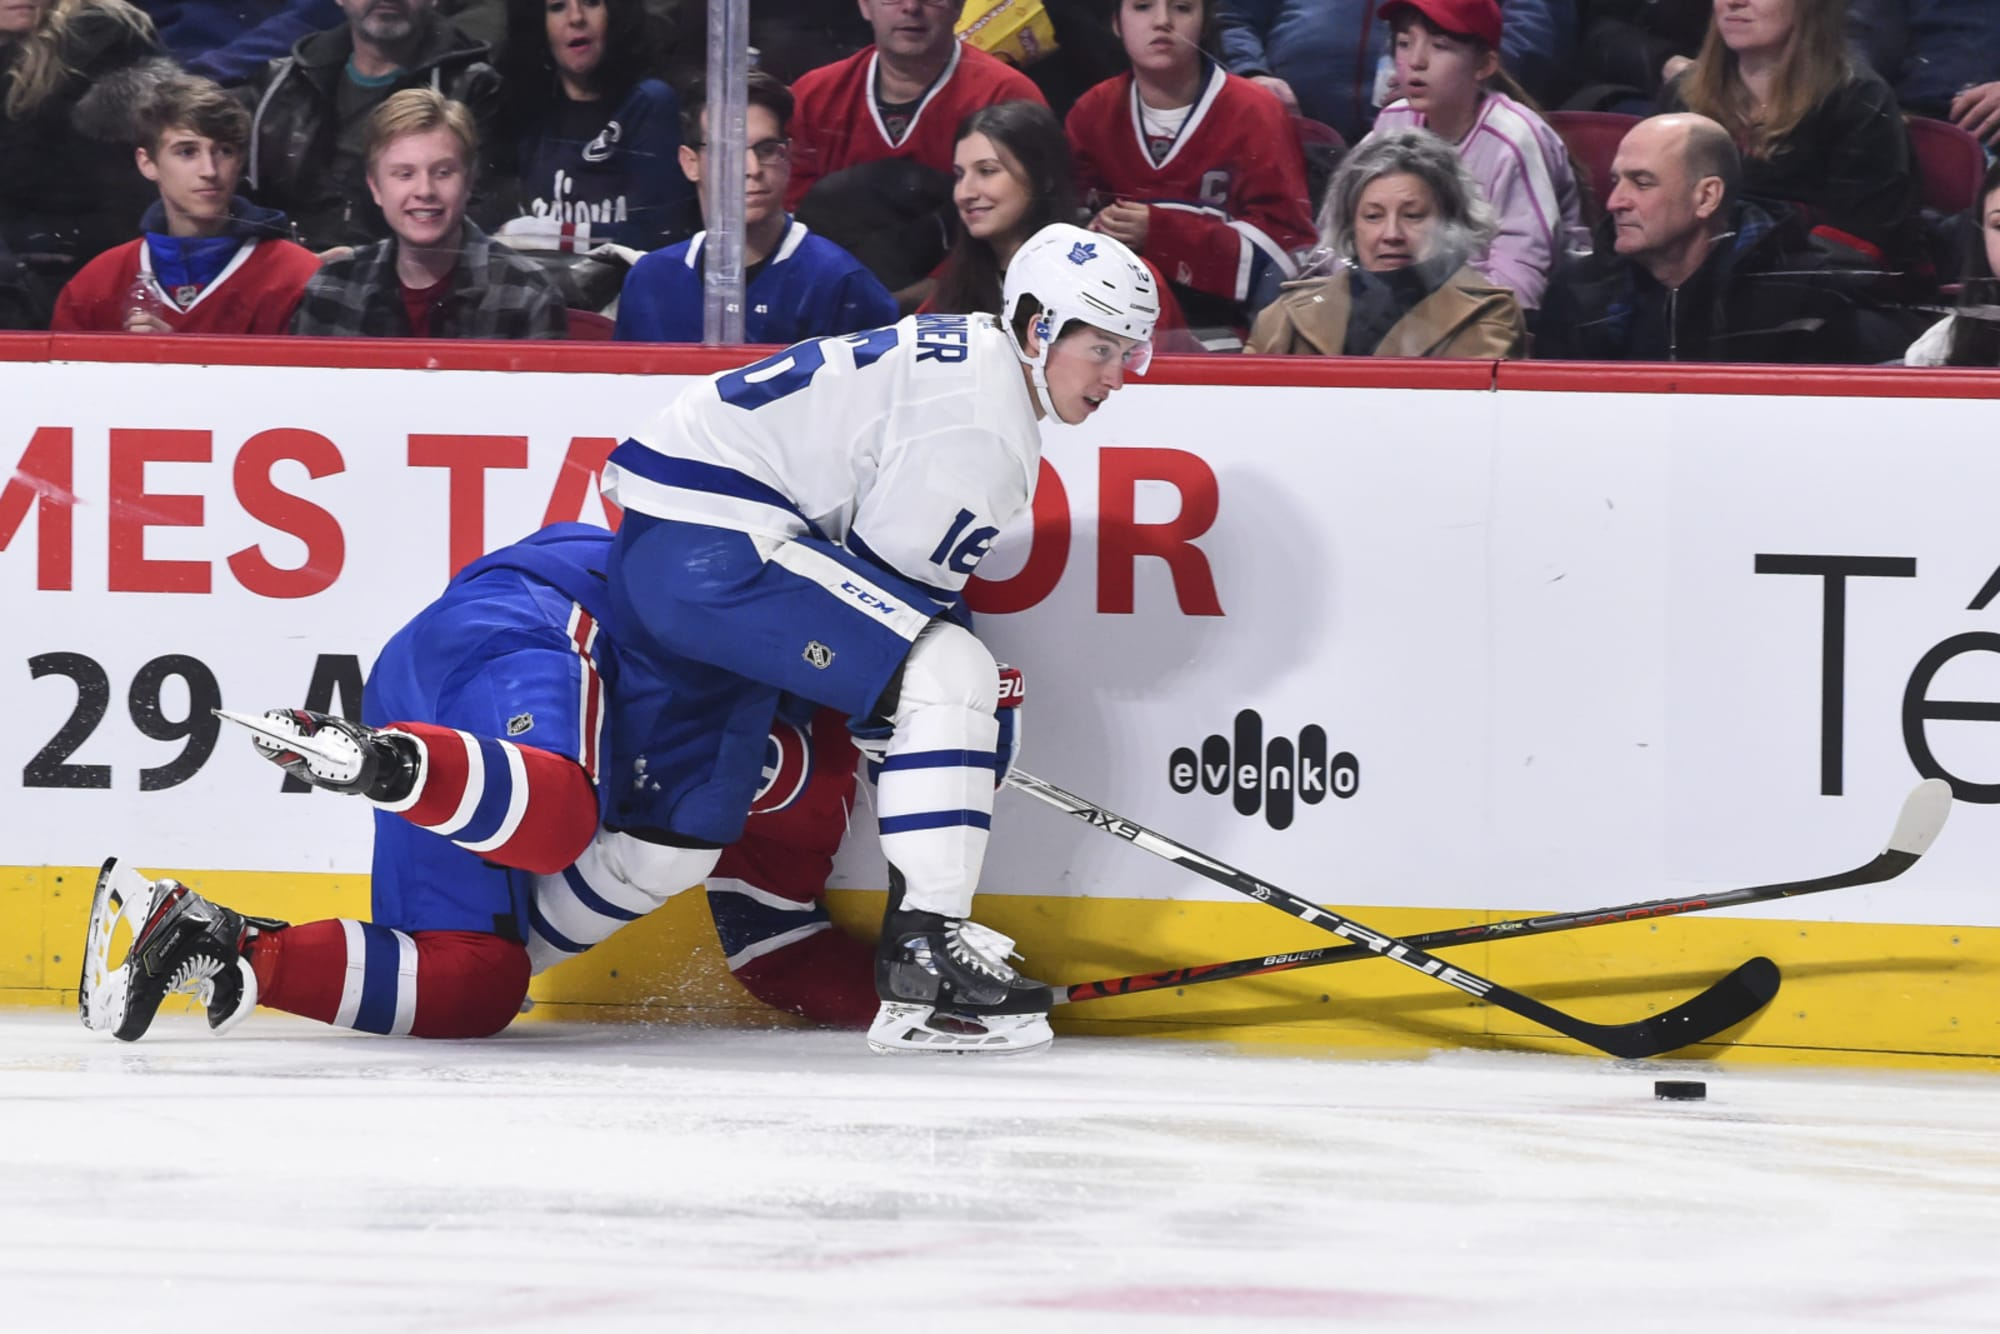 Toronto Maple Leafs: A Series of Thoughts On Rage and Negativity